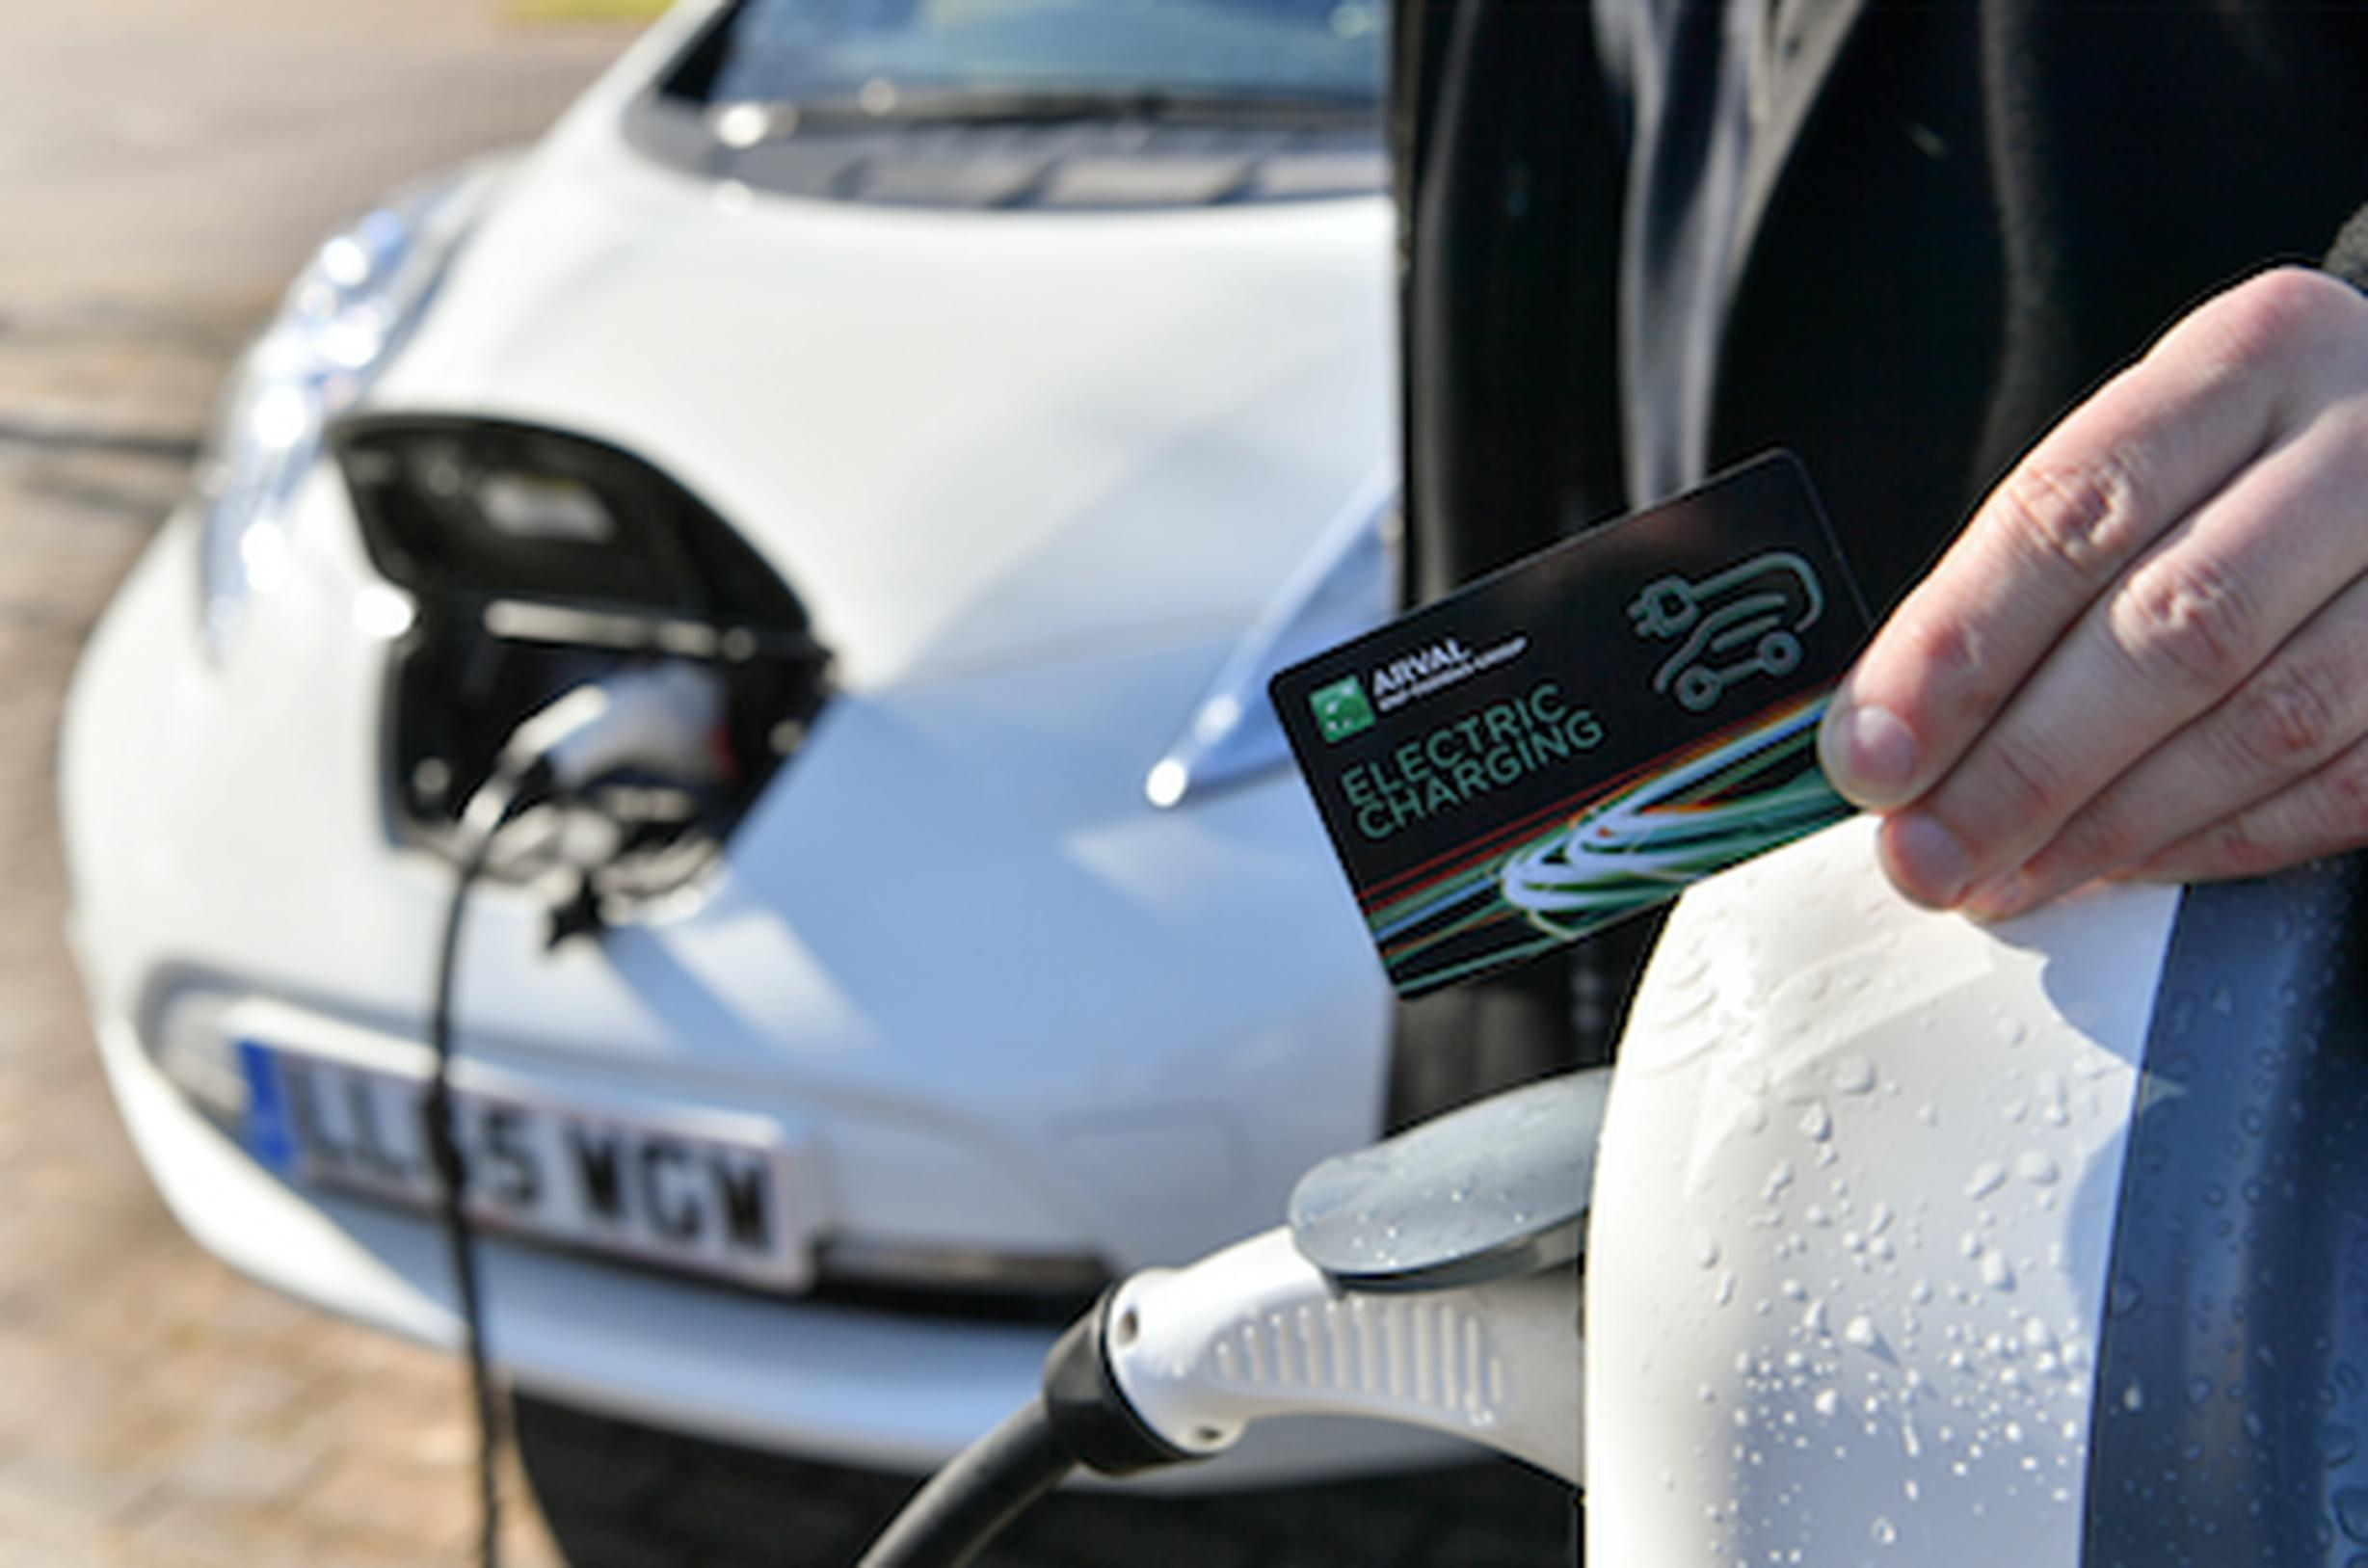 Arval is installing 50 charging points at its Windmill Hill Business Park offices in Swindon